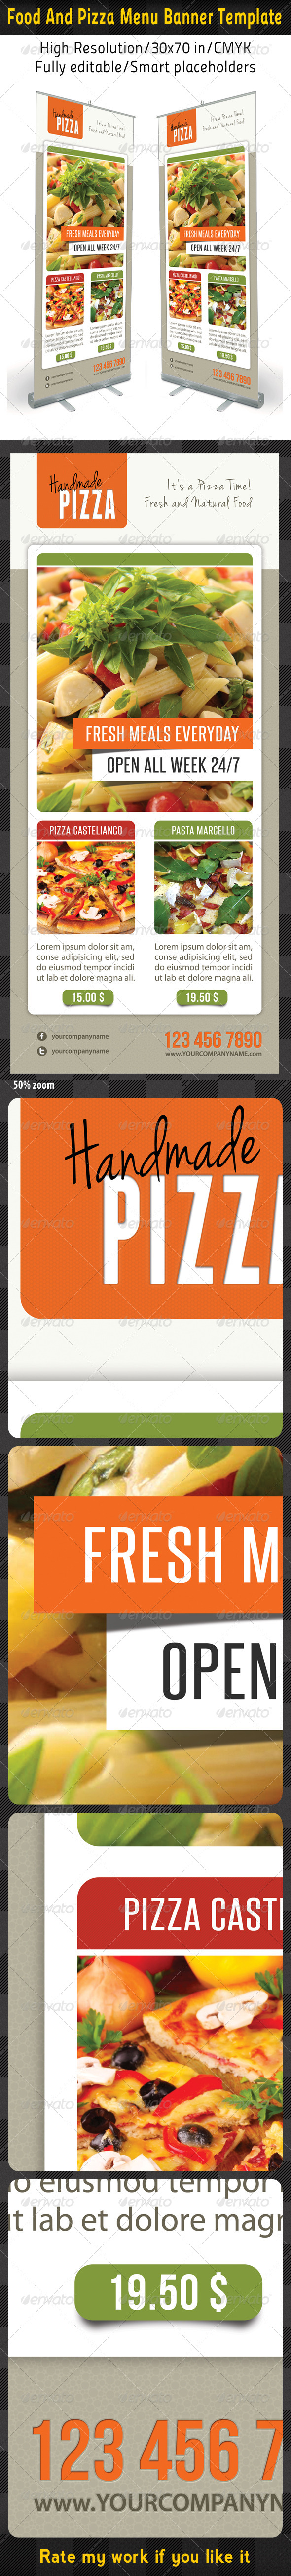 Food And Pizza Menu Banner Template 05 - Signage Print Templates